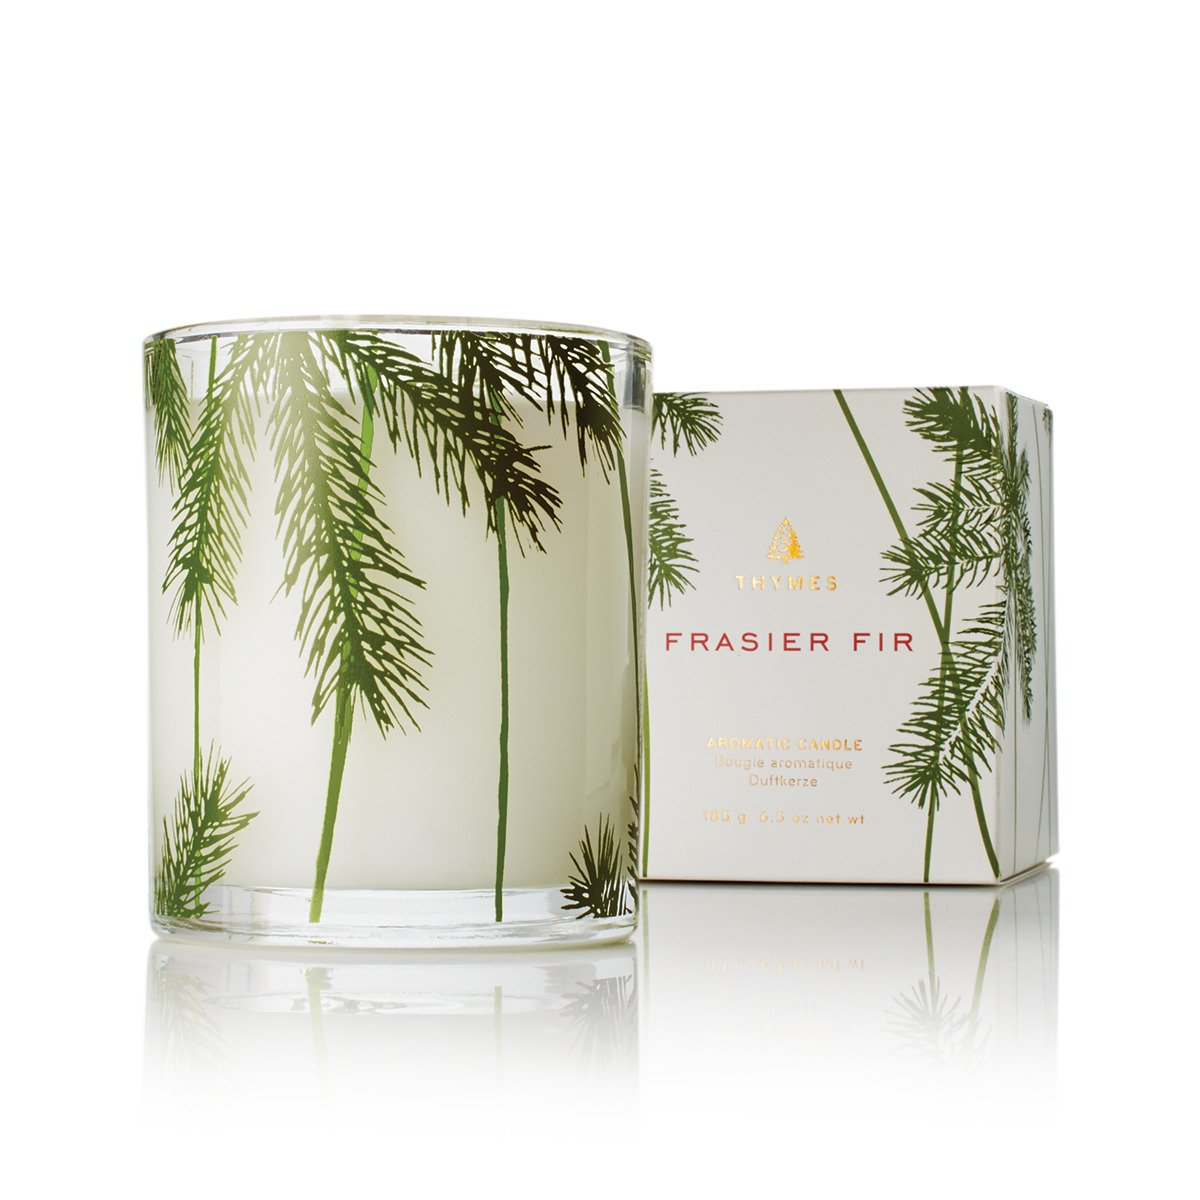 Thymes - Frasier Fir Pine Needle Decorative Glass Jar Candle with 50-Hour Burn Time - 6.5 Ounces by Thymes